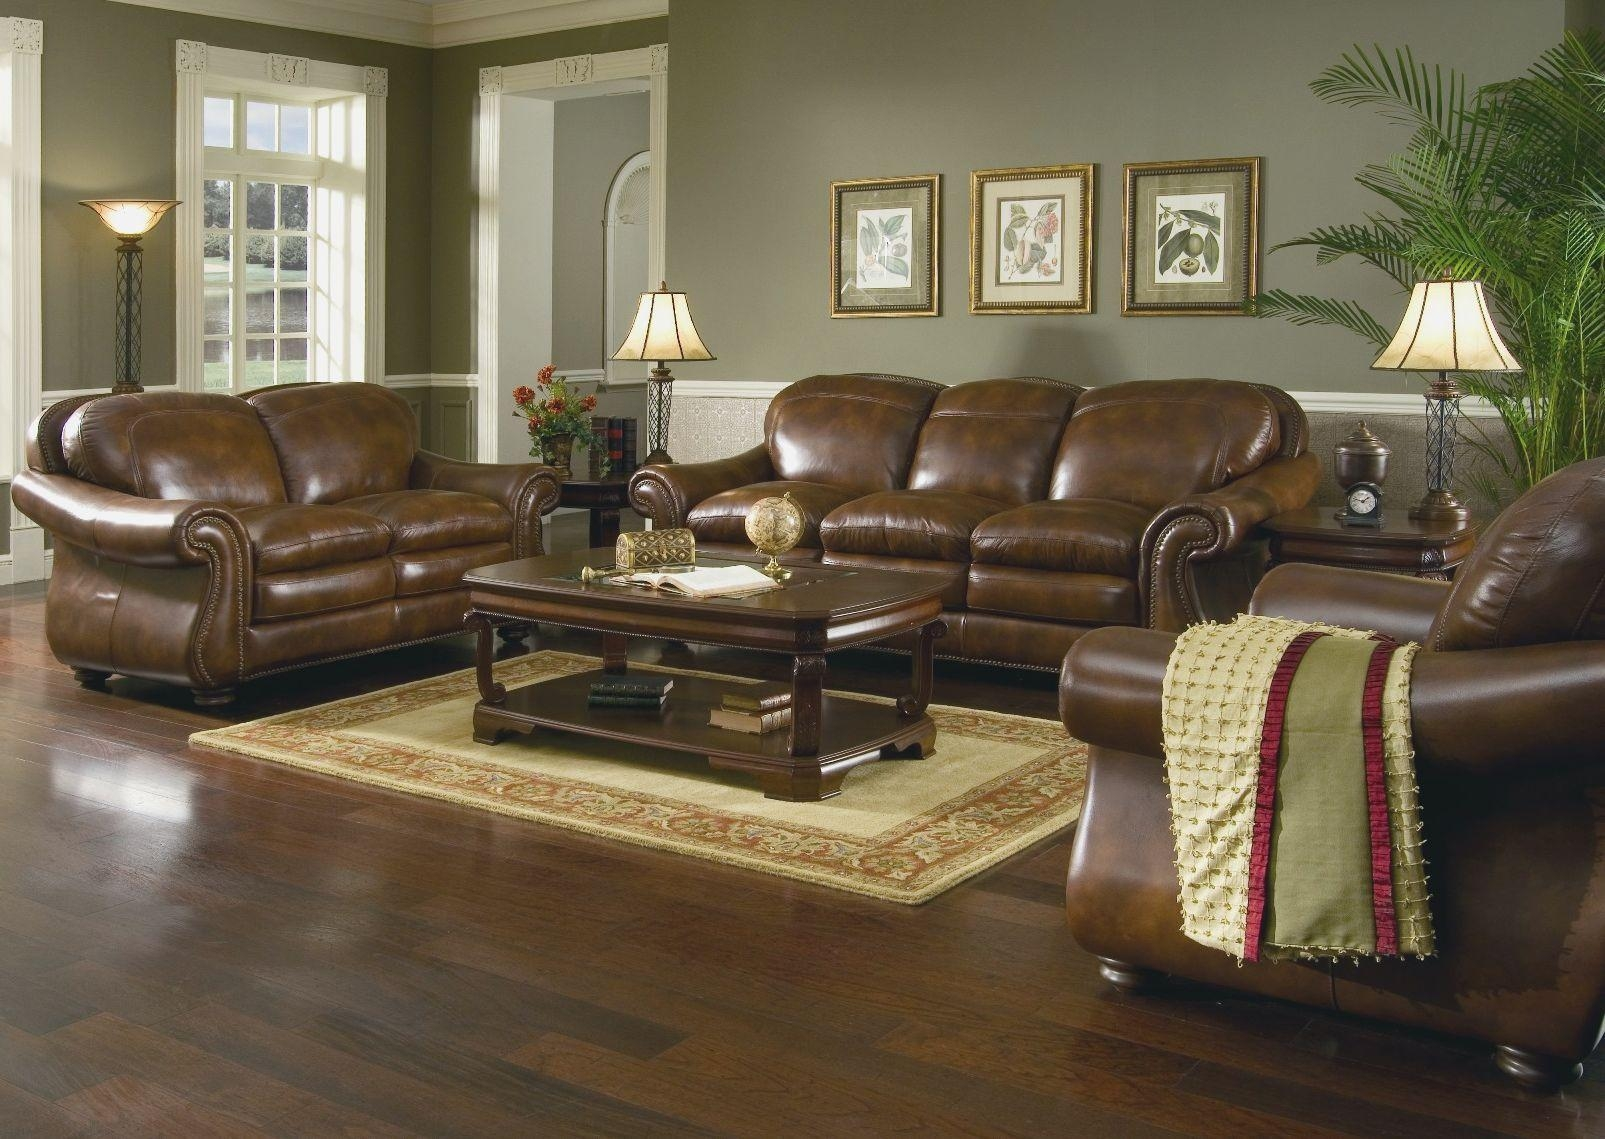 living room designs with chocolate brown sofa for small rooms 20 inspirations sofas   ideas